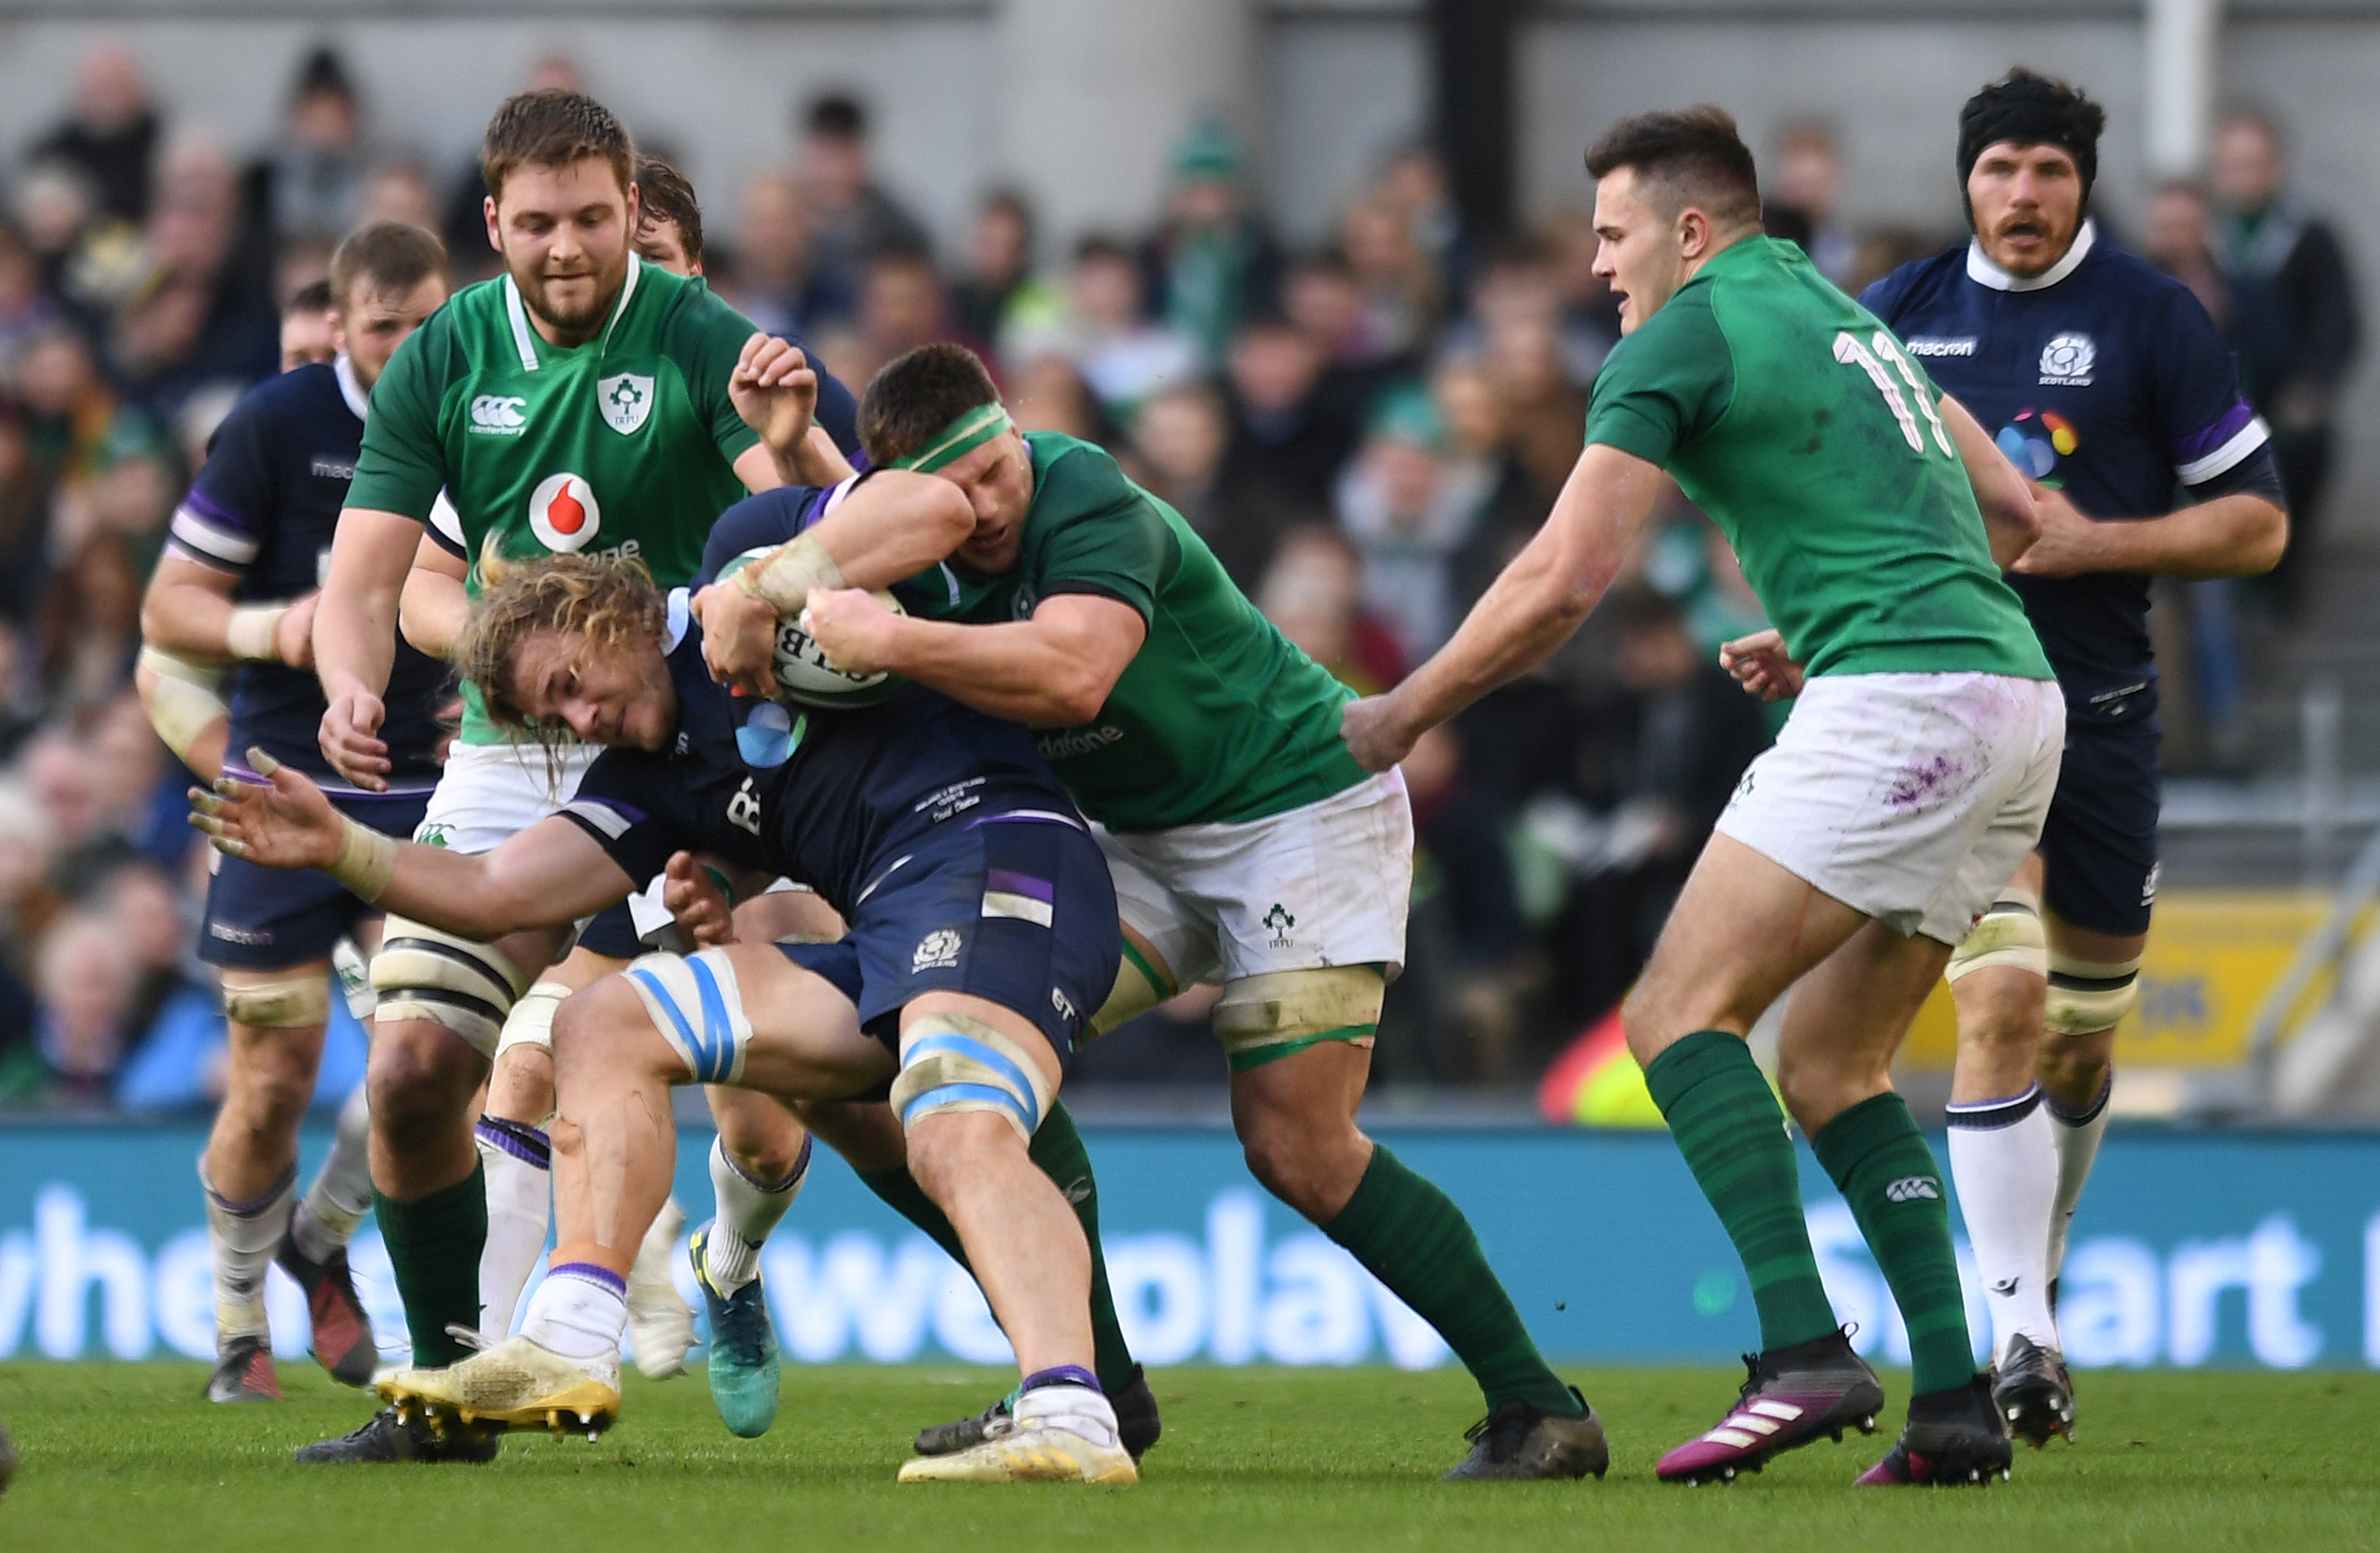 2018-03-10T161417Z_1099898265_RC1FCB2FE0F0_RTRMADP_3_RUGBY-UNION-NATIONS-IRL-SCO